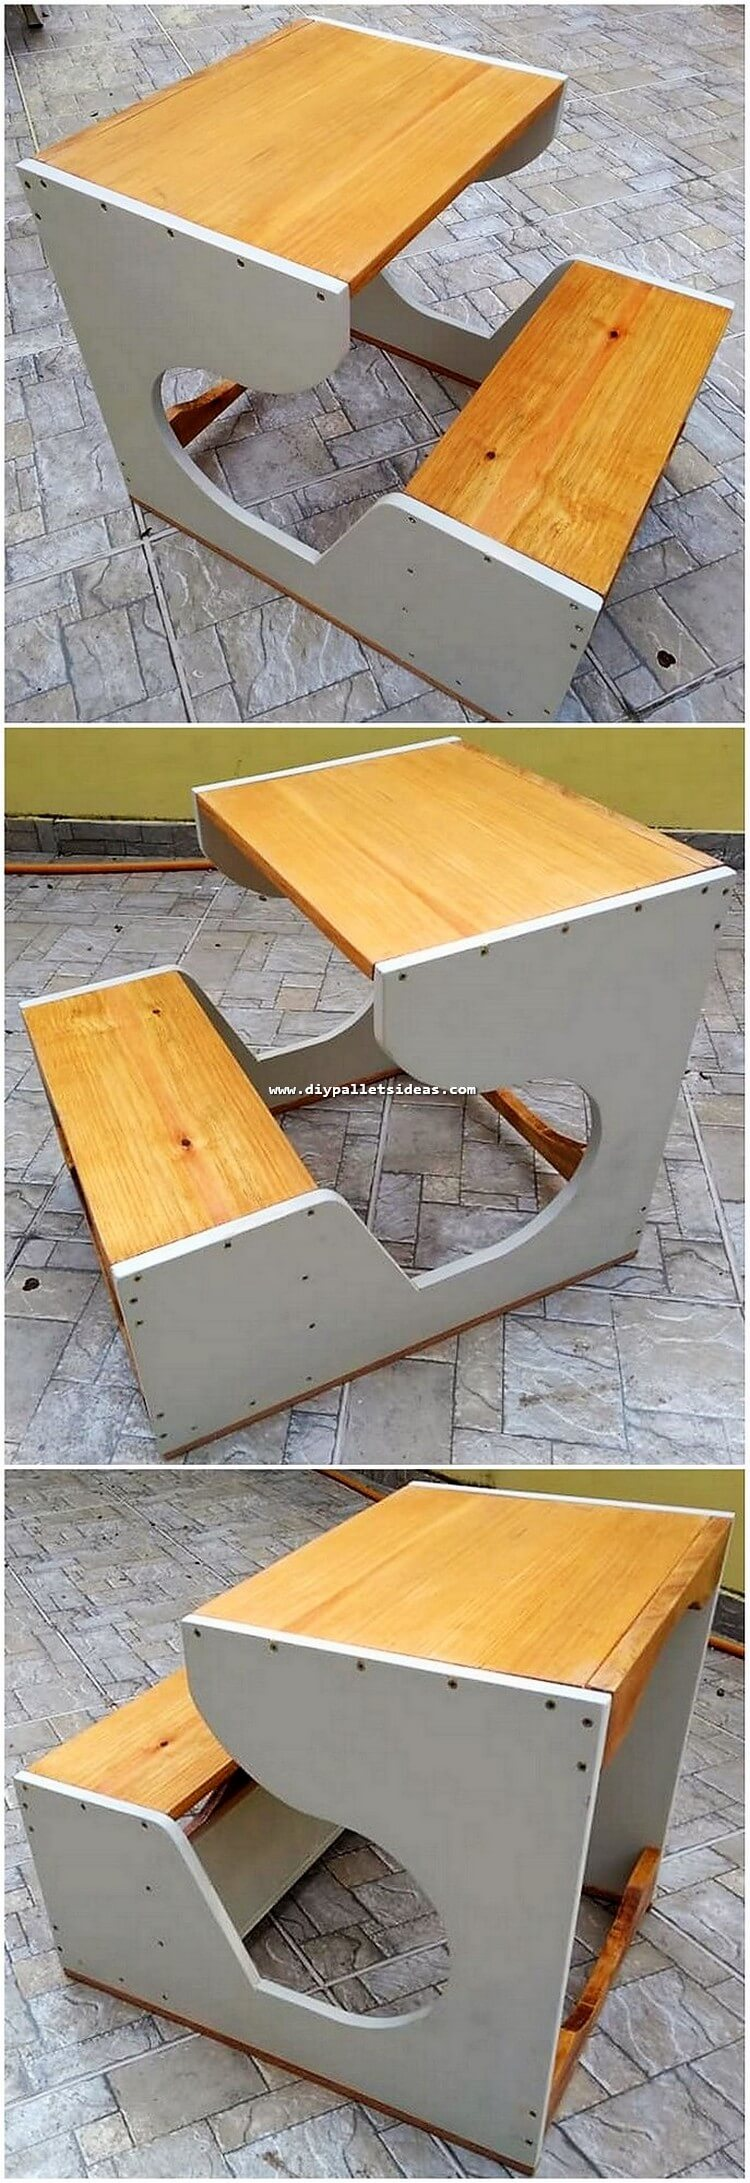 Pallet Bench with Table for Kids